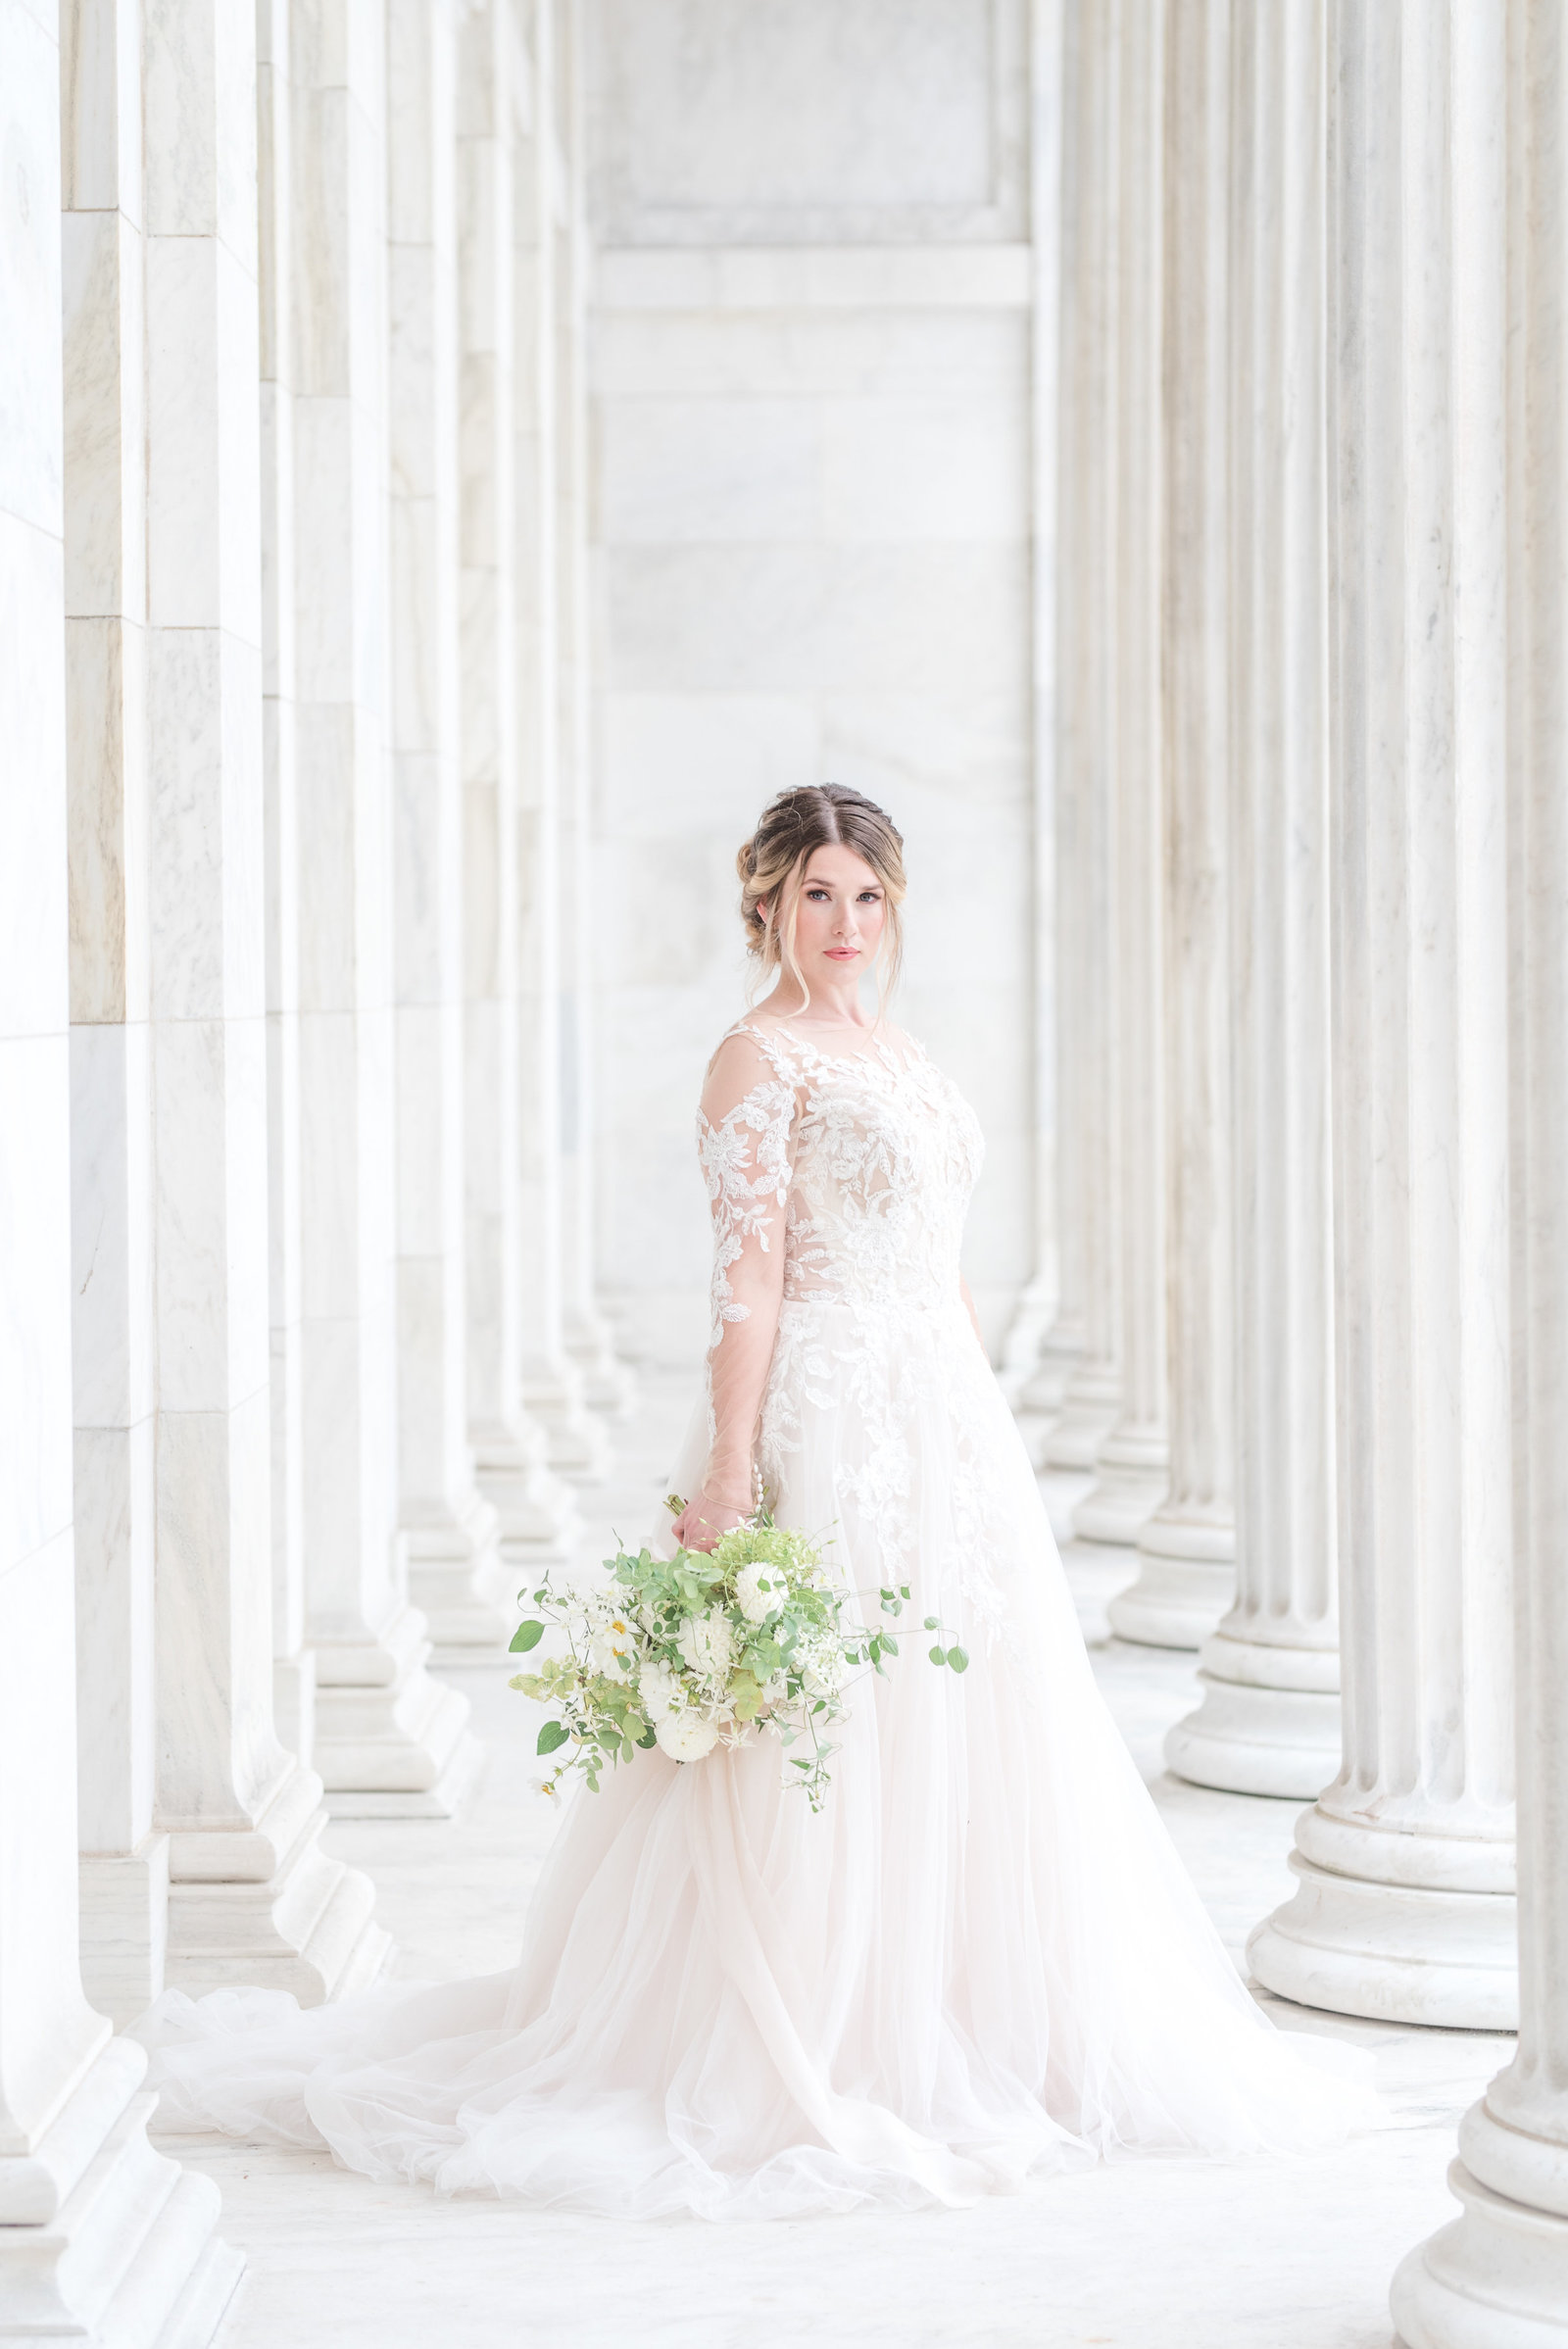 Toledo Museum of Art Wedding with White of Dublin wedding dress